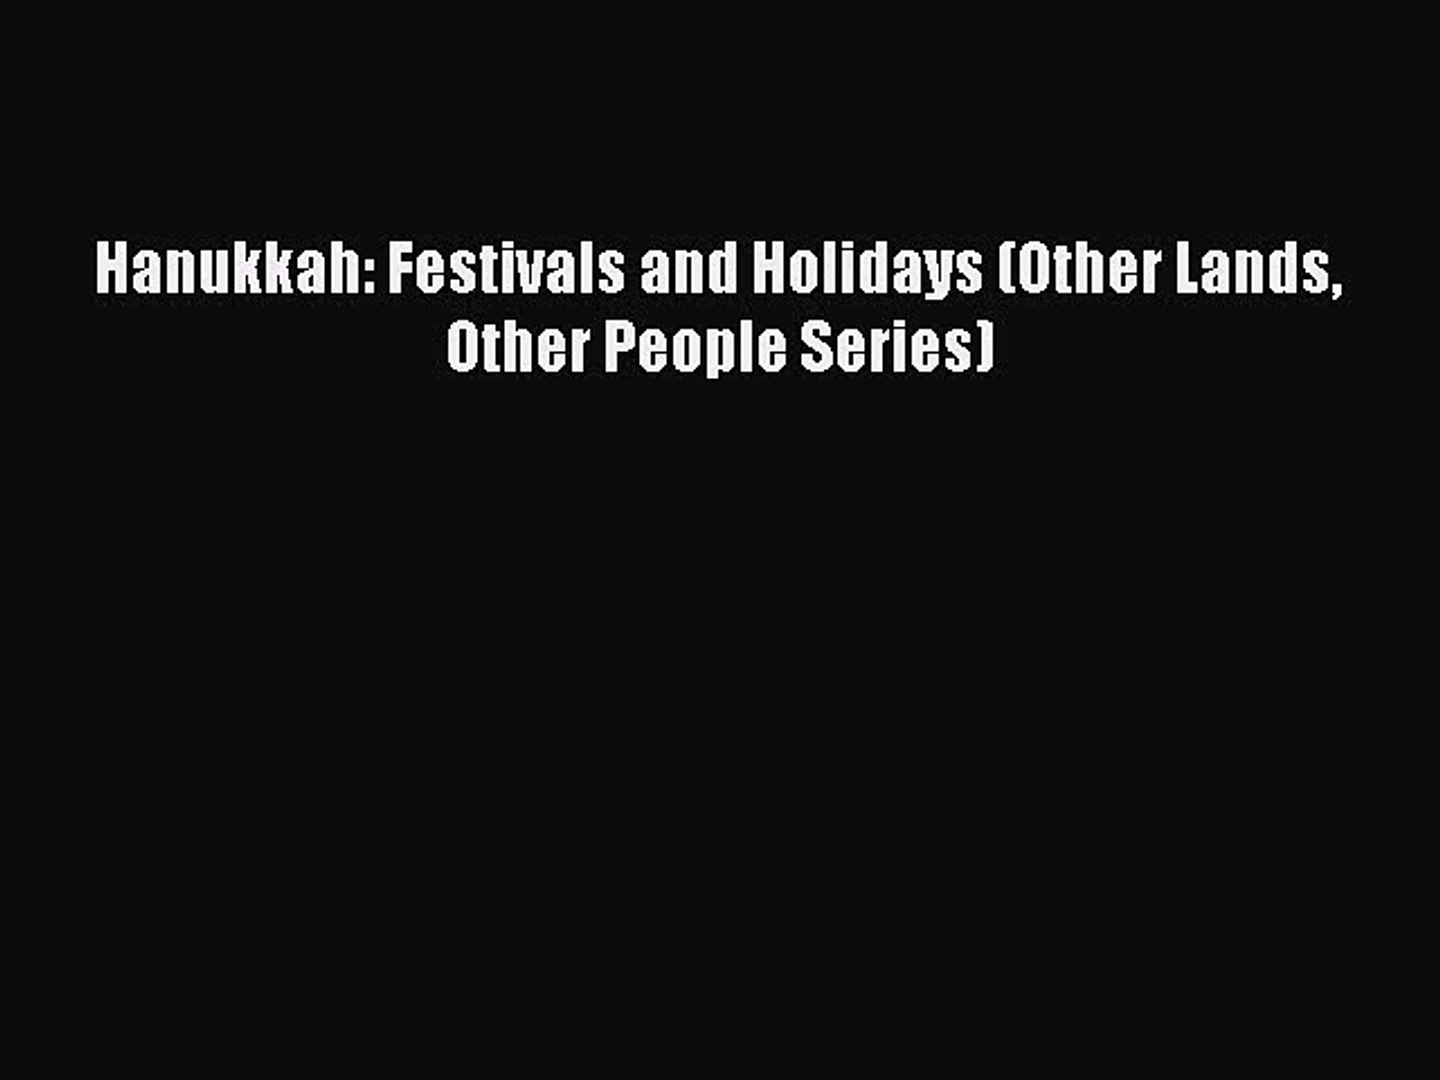 (PDF Download) Hanukkah: Festivals and Holidays (Other Lands Other People Series) Download